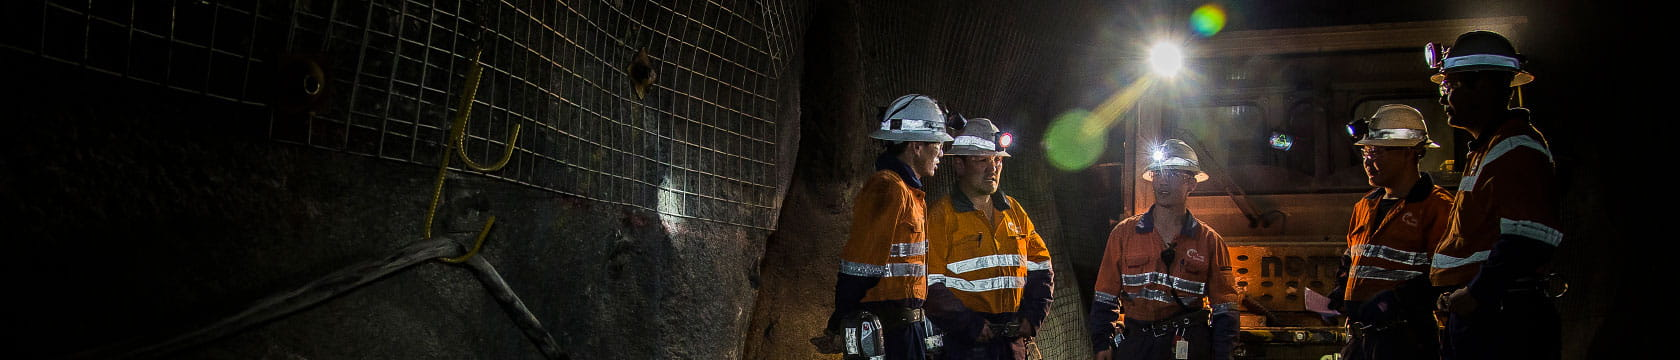 5 male workers underground with hard hats and lights